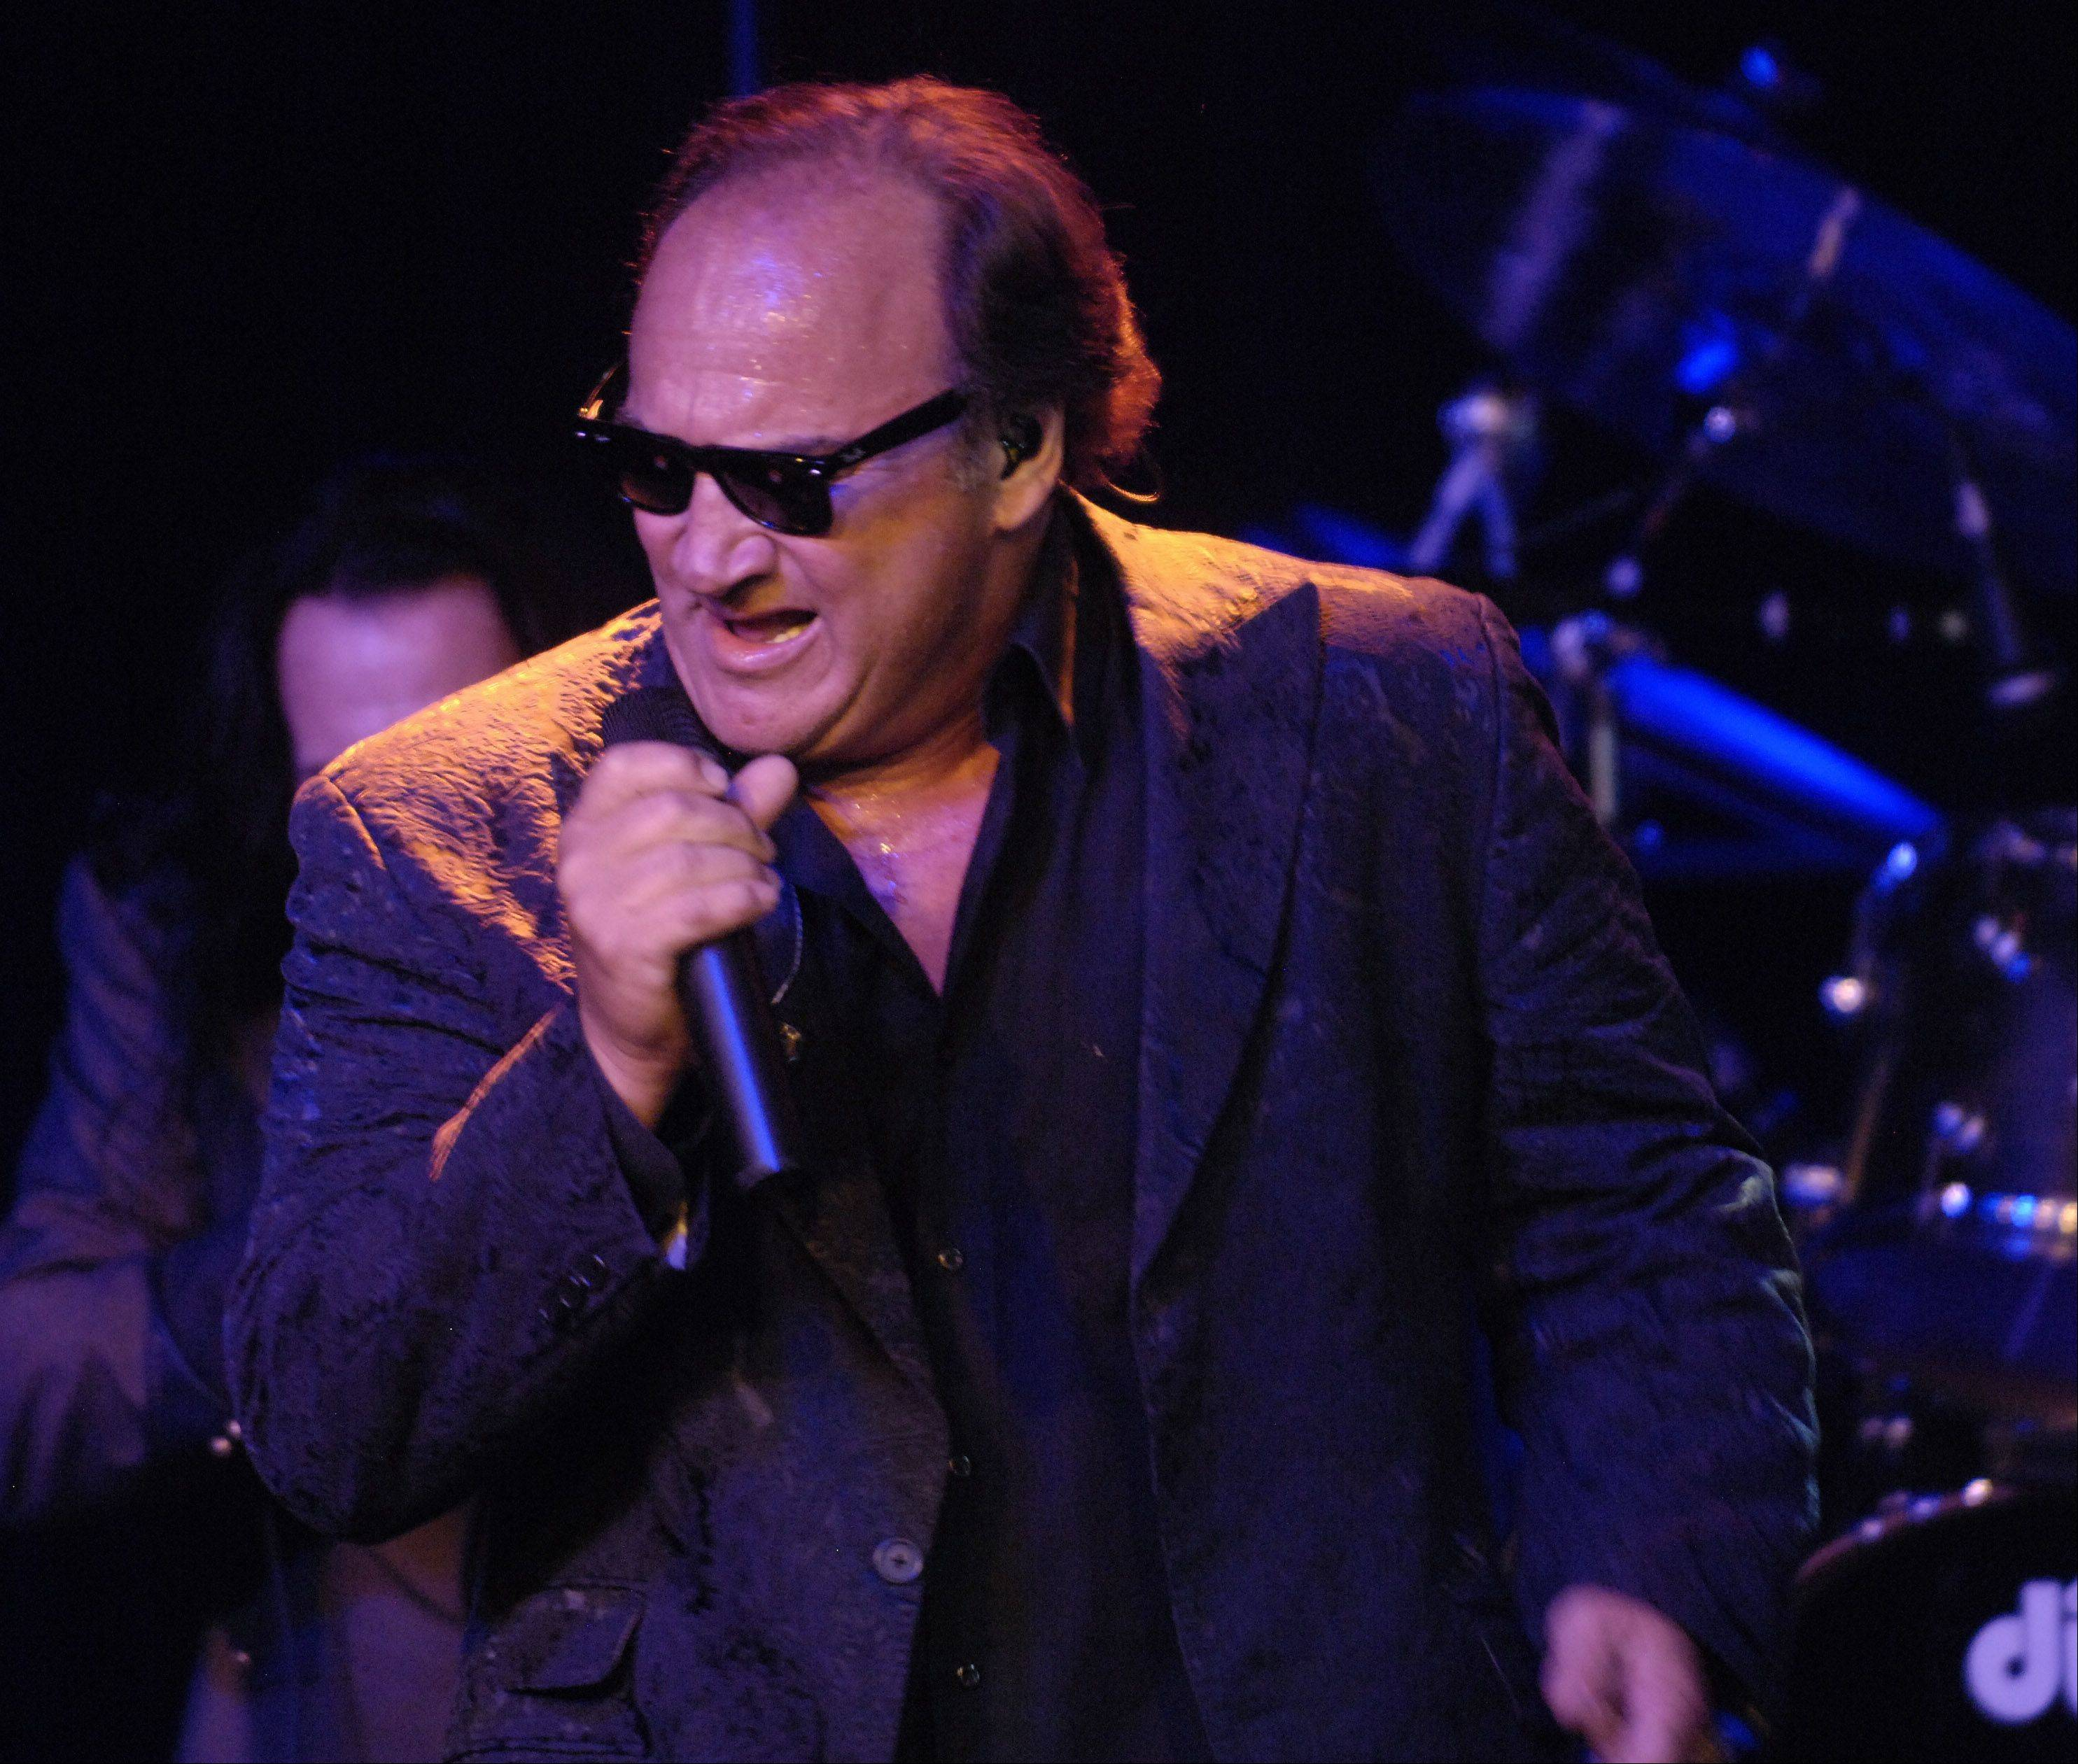 Jim Belushi and the Sacred Hearts performed at Rivers Casino in Des Plaines Wednesday to mark the casino's anniversary.